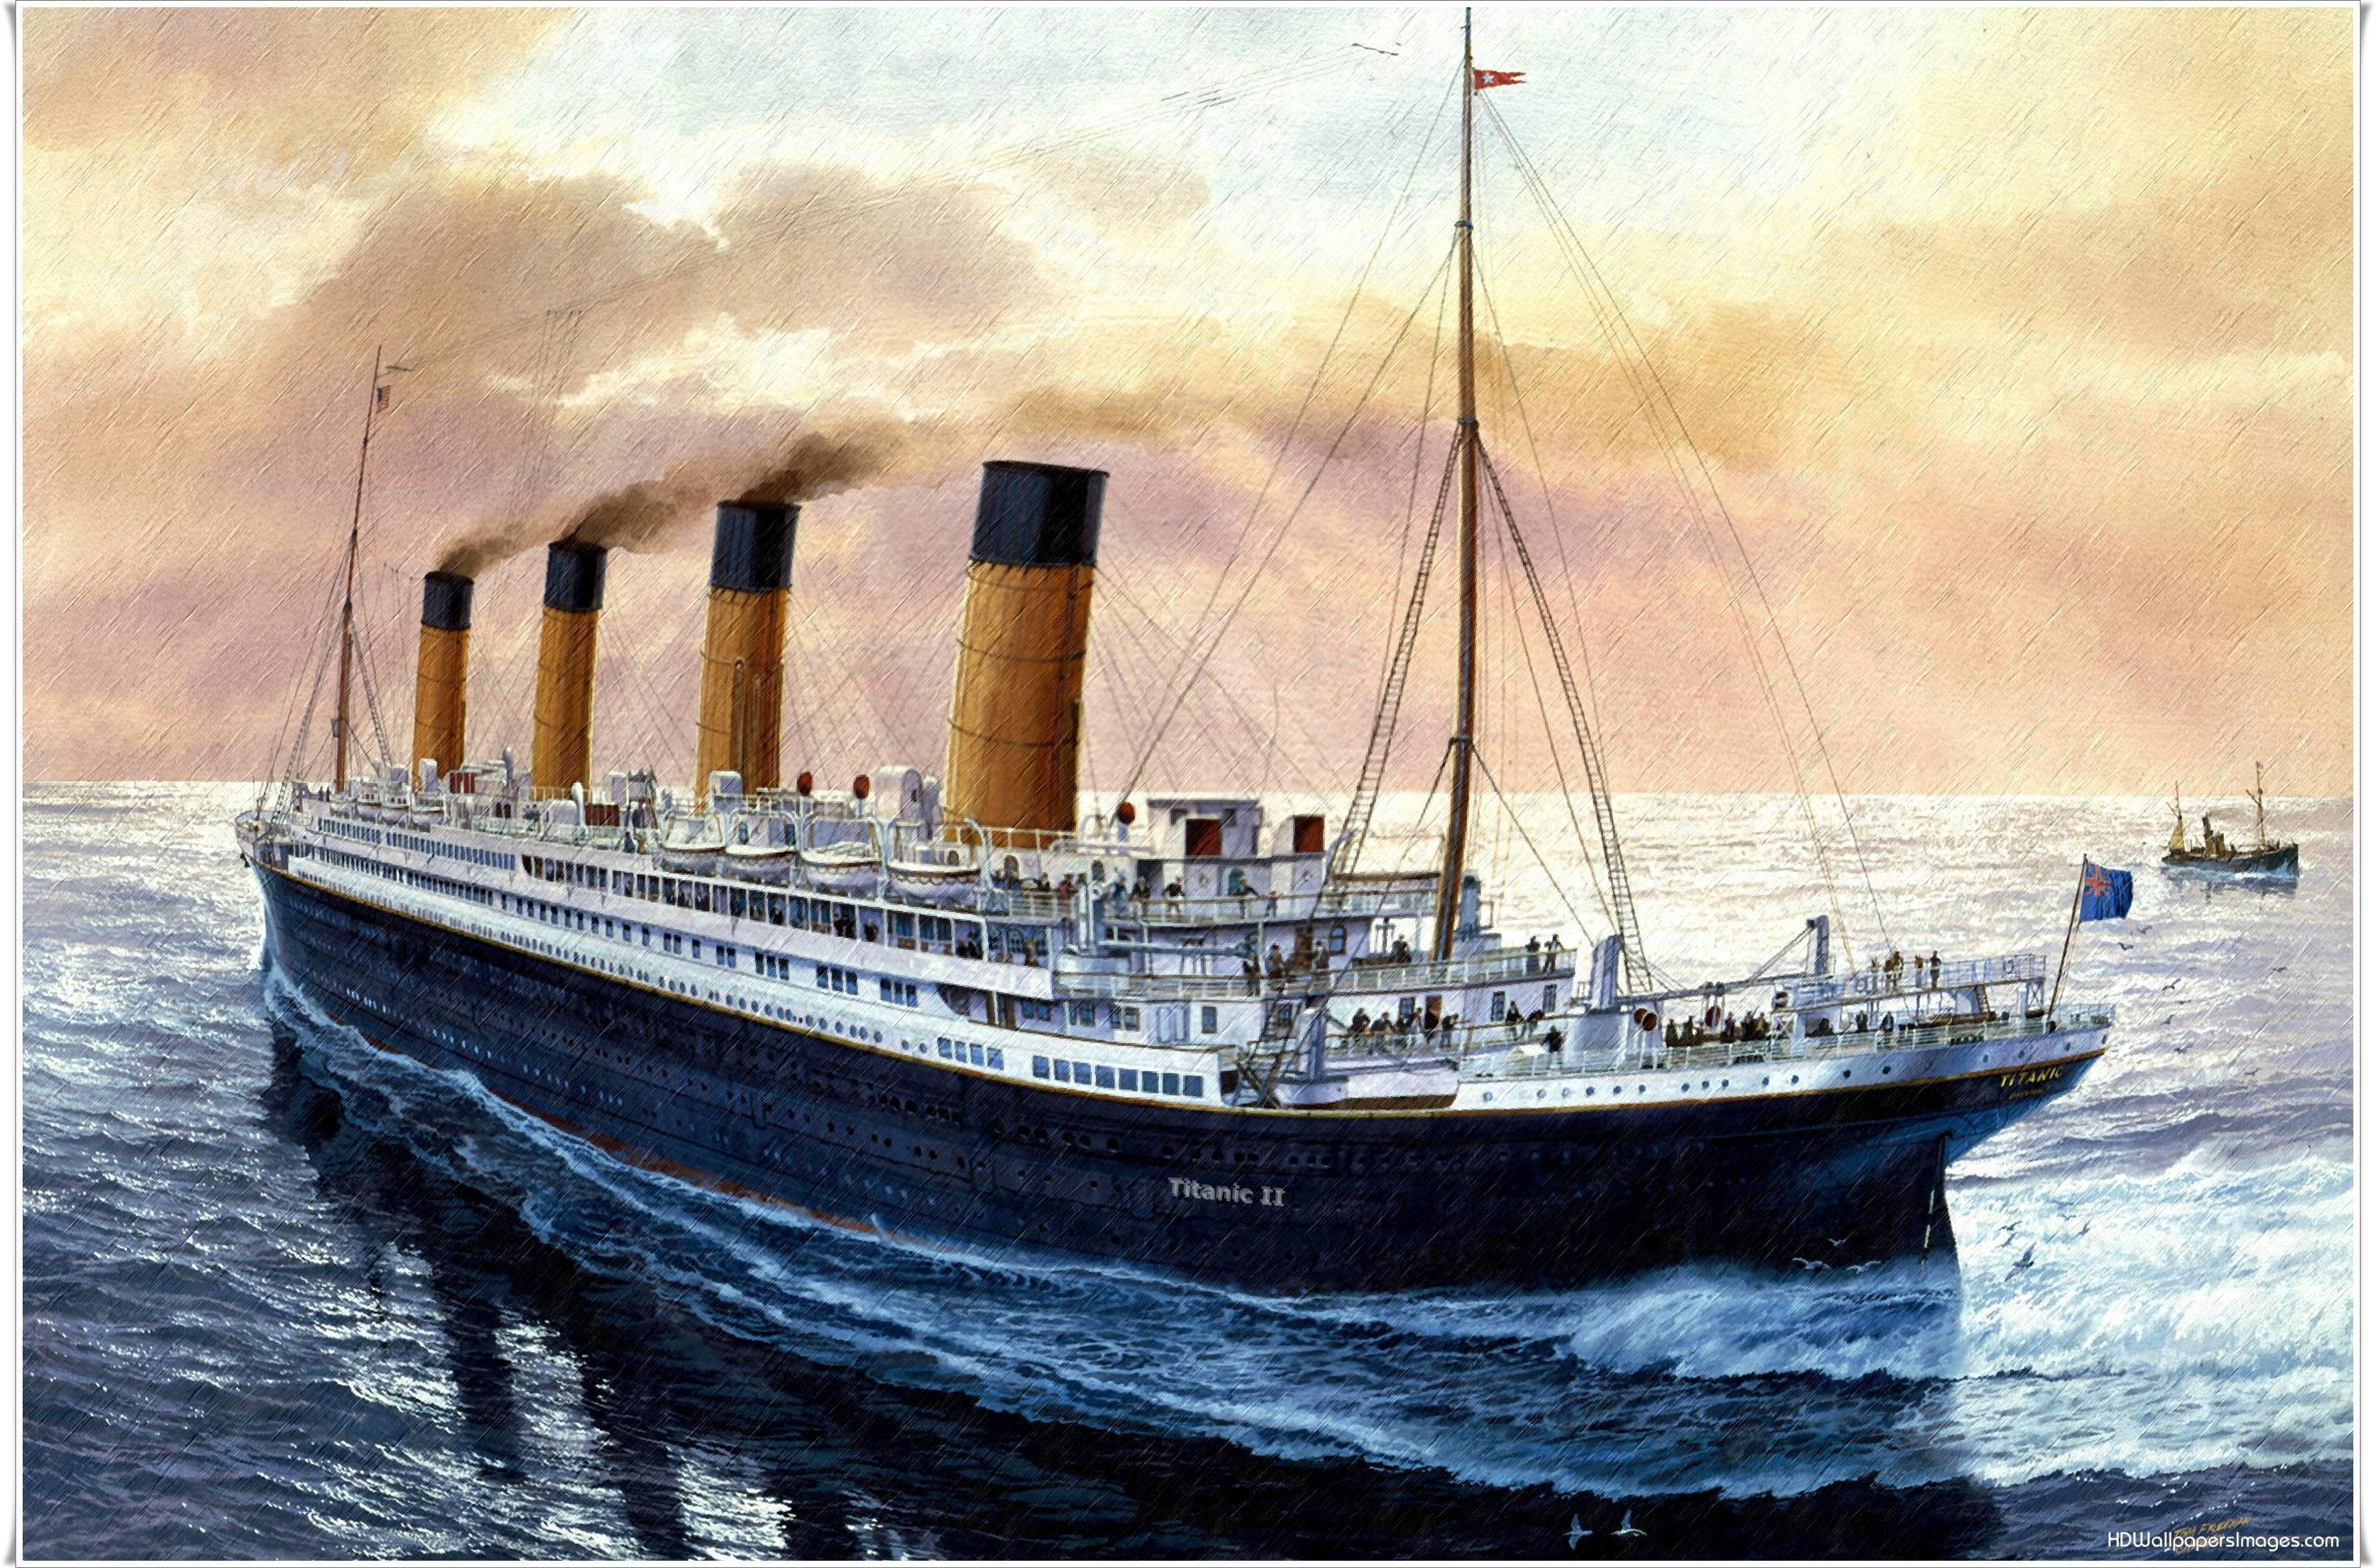 2936x1938 Titanic 2 | HD Wallpapers Images